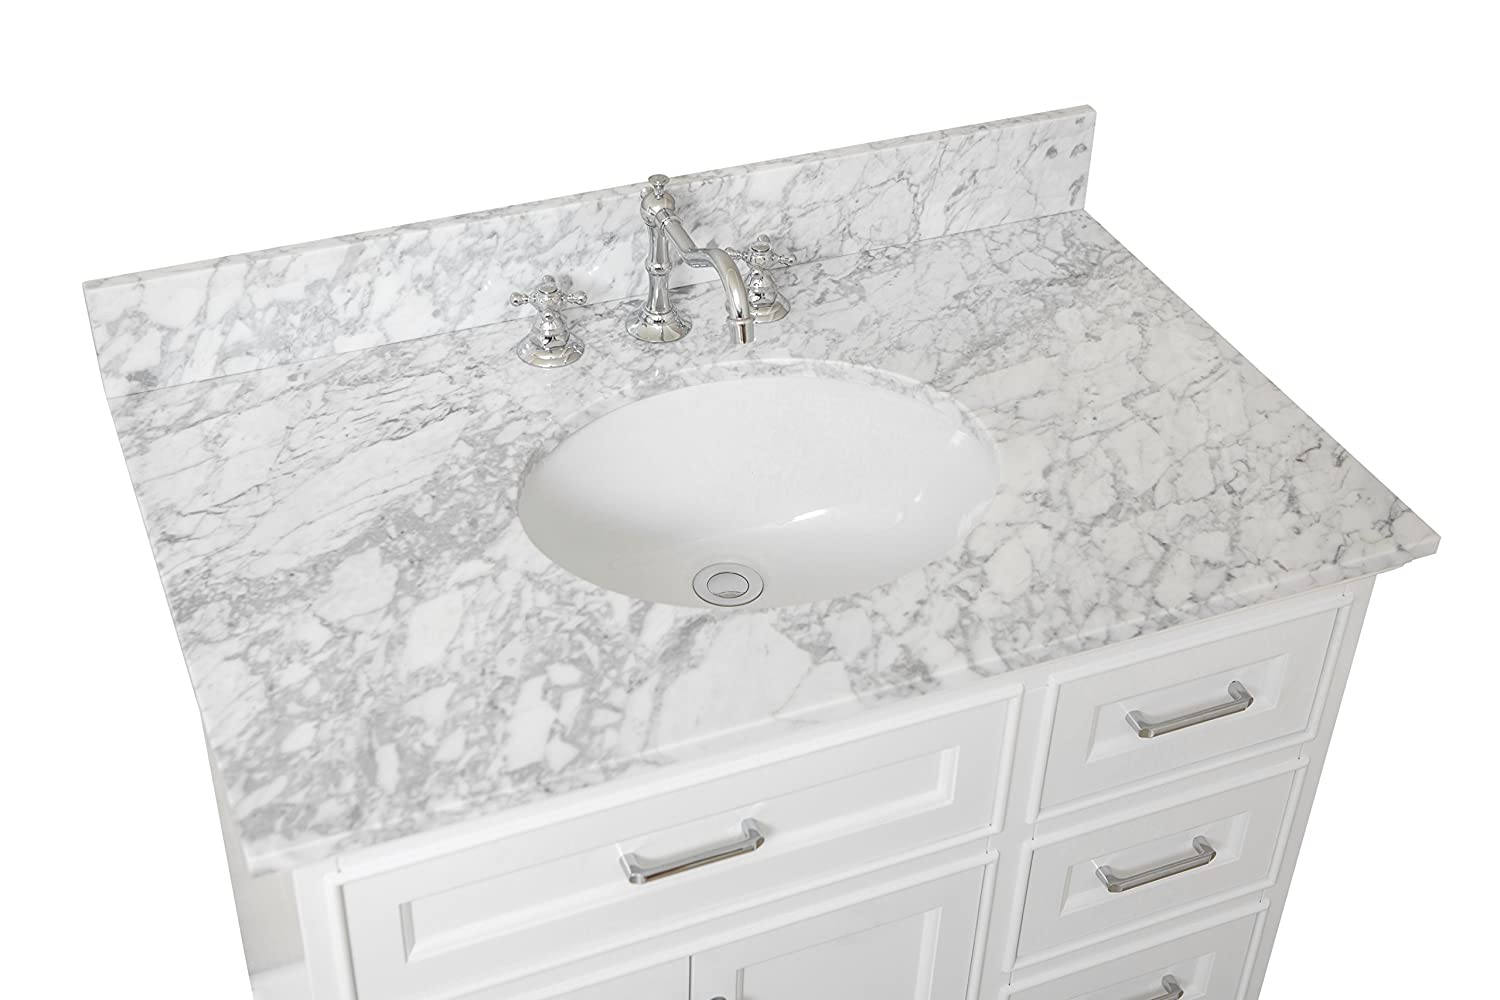 Aria 36-inch Bathroom Vanity (Carrara/White): Includes A White Cabinet With  Soft Close Drawers, Authentic Italian Carrara Marble Countertop,